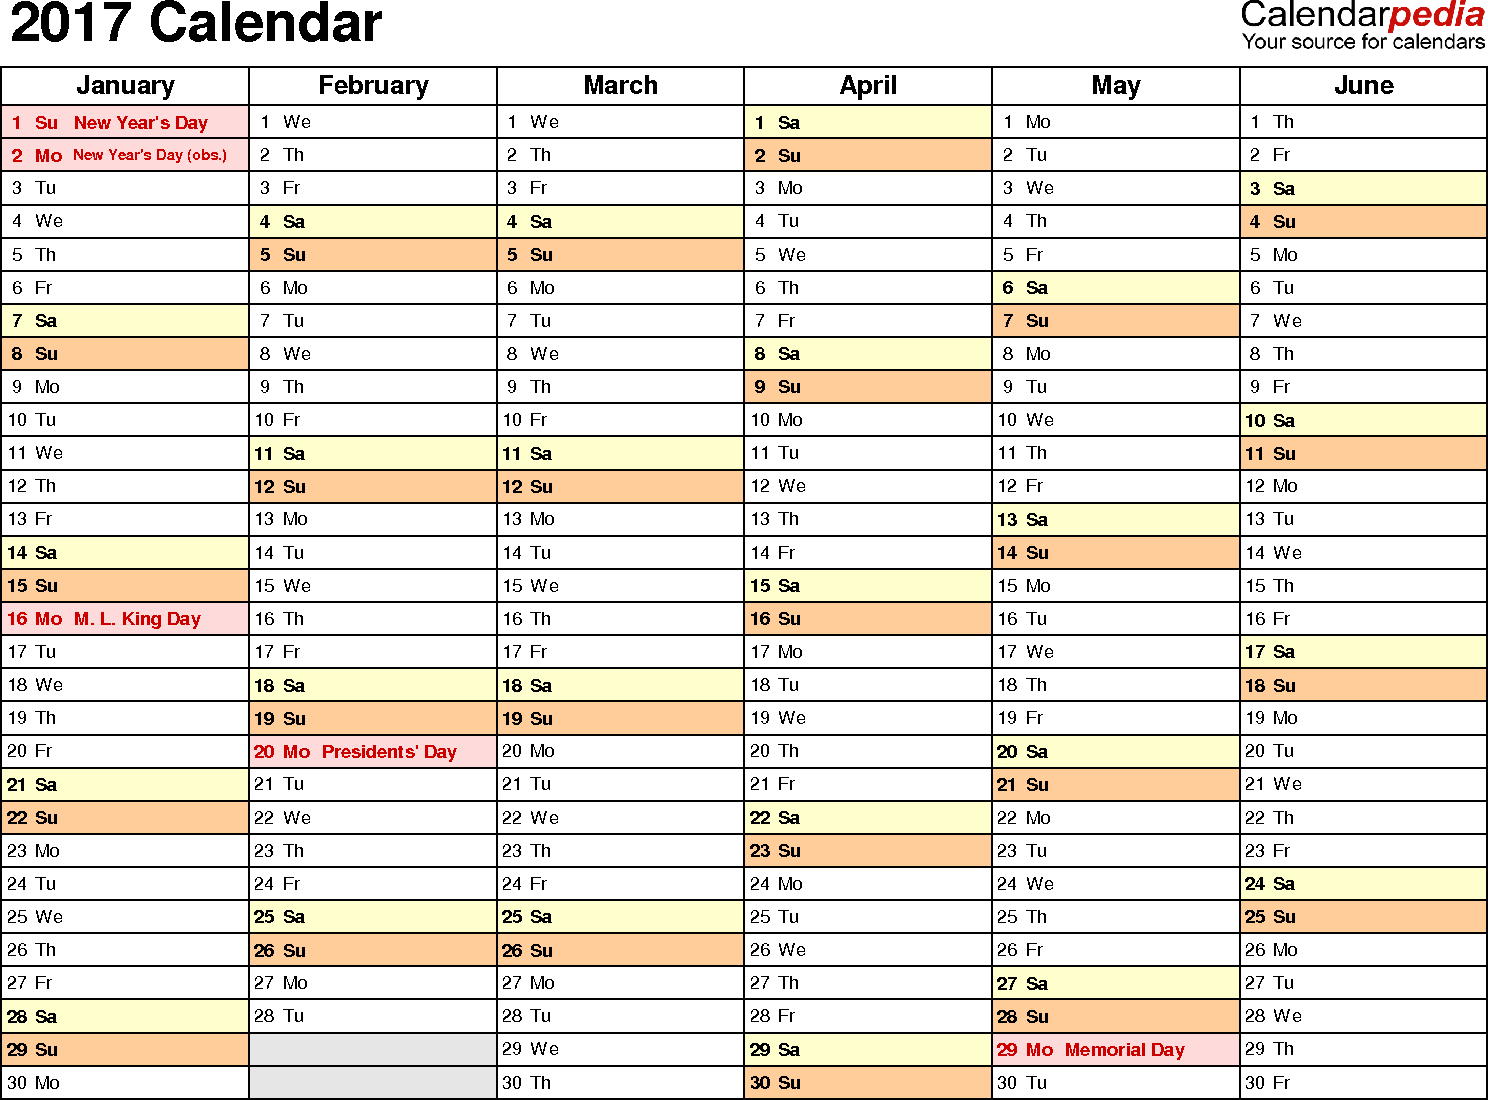 Ediblewildsus  Unusual  Calendar  Download  Free Printable Excel Templates Xls With Inspiring Template   Calendar For Excel Months Horizontally  Pages Landscape Orientation With Amusing Excel If Function Multiple Criteria Also Powerpoint To Excel In Addition Excel Countif  Criteria And Excel Data Analysis Toolpak  As Well As Unblocked Excel Games Additionally Excel Survey Results Template From Calendarpediacom With Ediblewildsus  Inspiring  Calendar  Download  Free Printable Excel Templates Xls With Amusing Template   Calendar For Excel Months Horizontally  Pages Landscape Orientation And Unusual Excel If Function Multiple Criteria Also Powerpoint To Excel In Addition Excel Countif  Criteria From Calendarpediacom